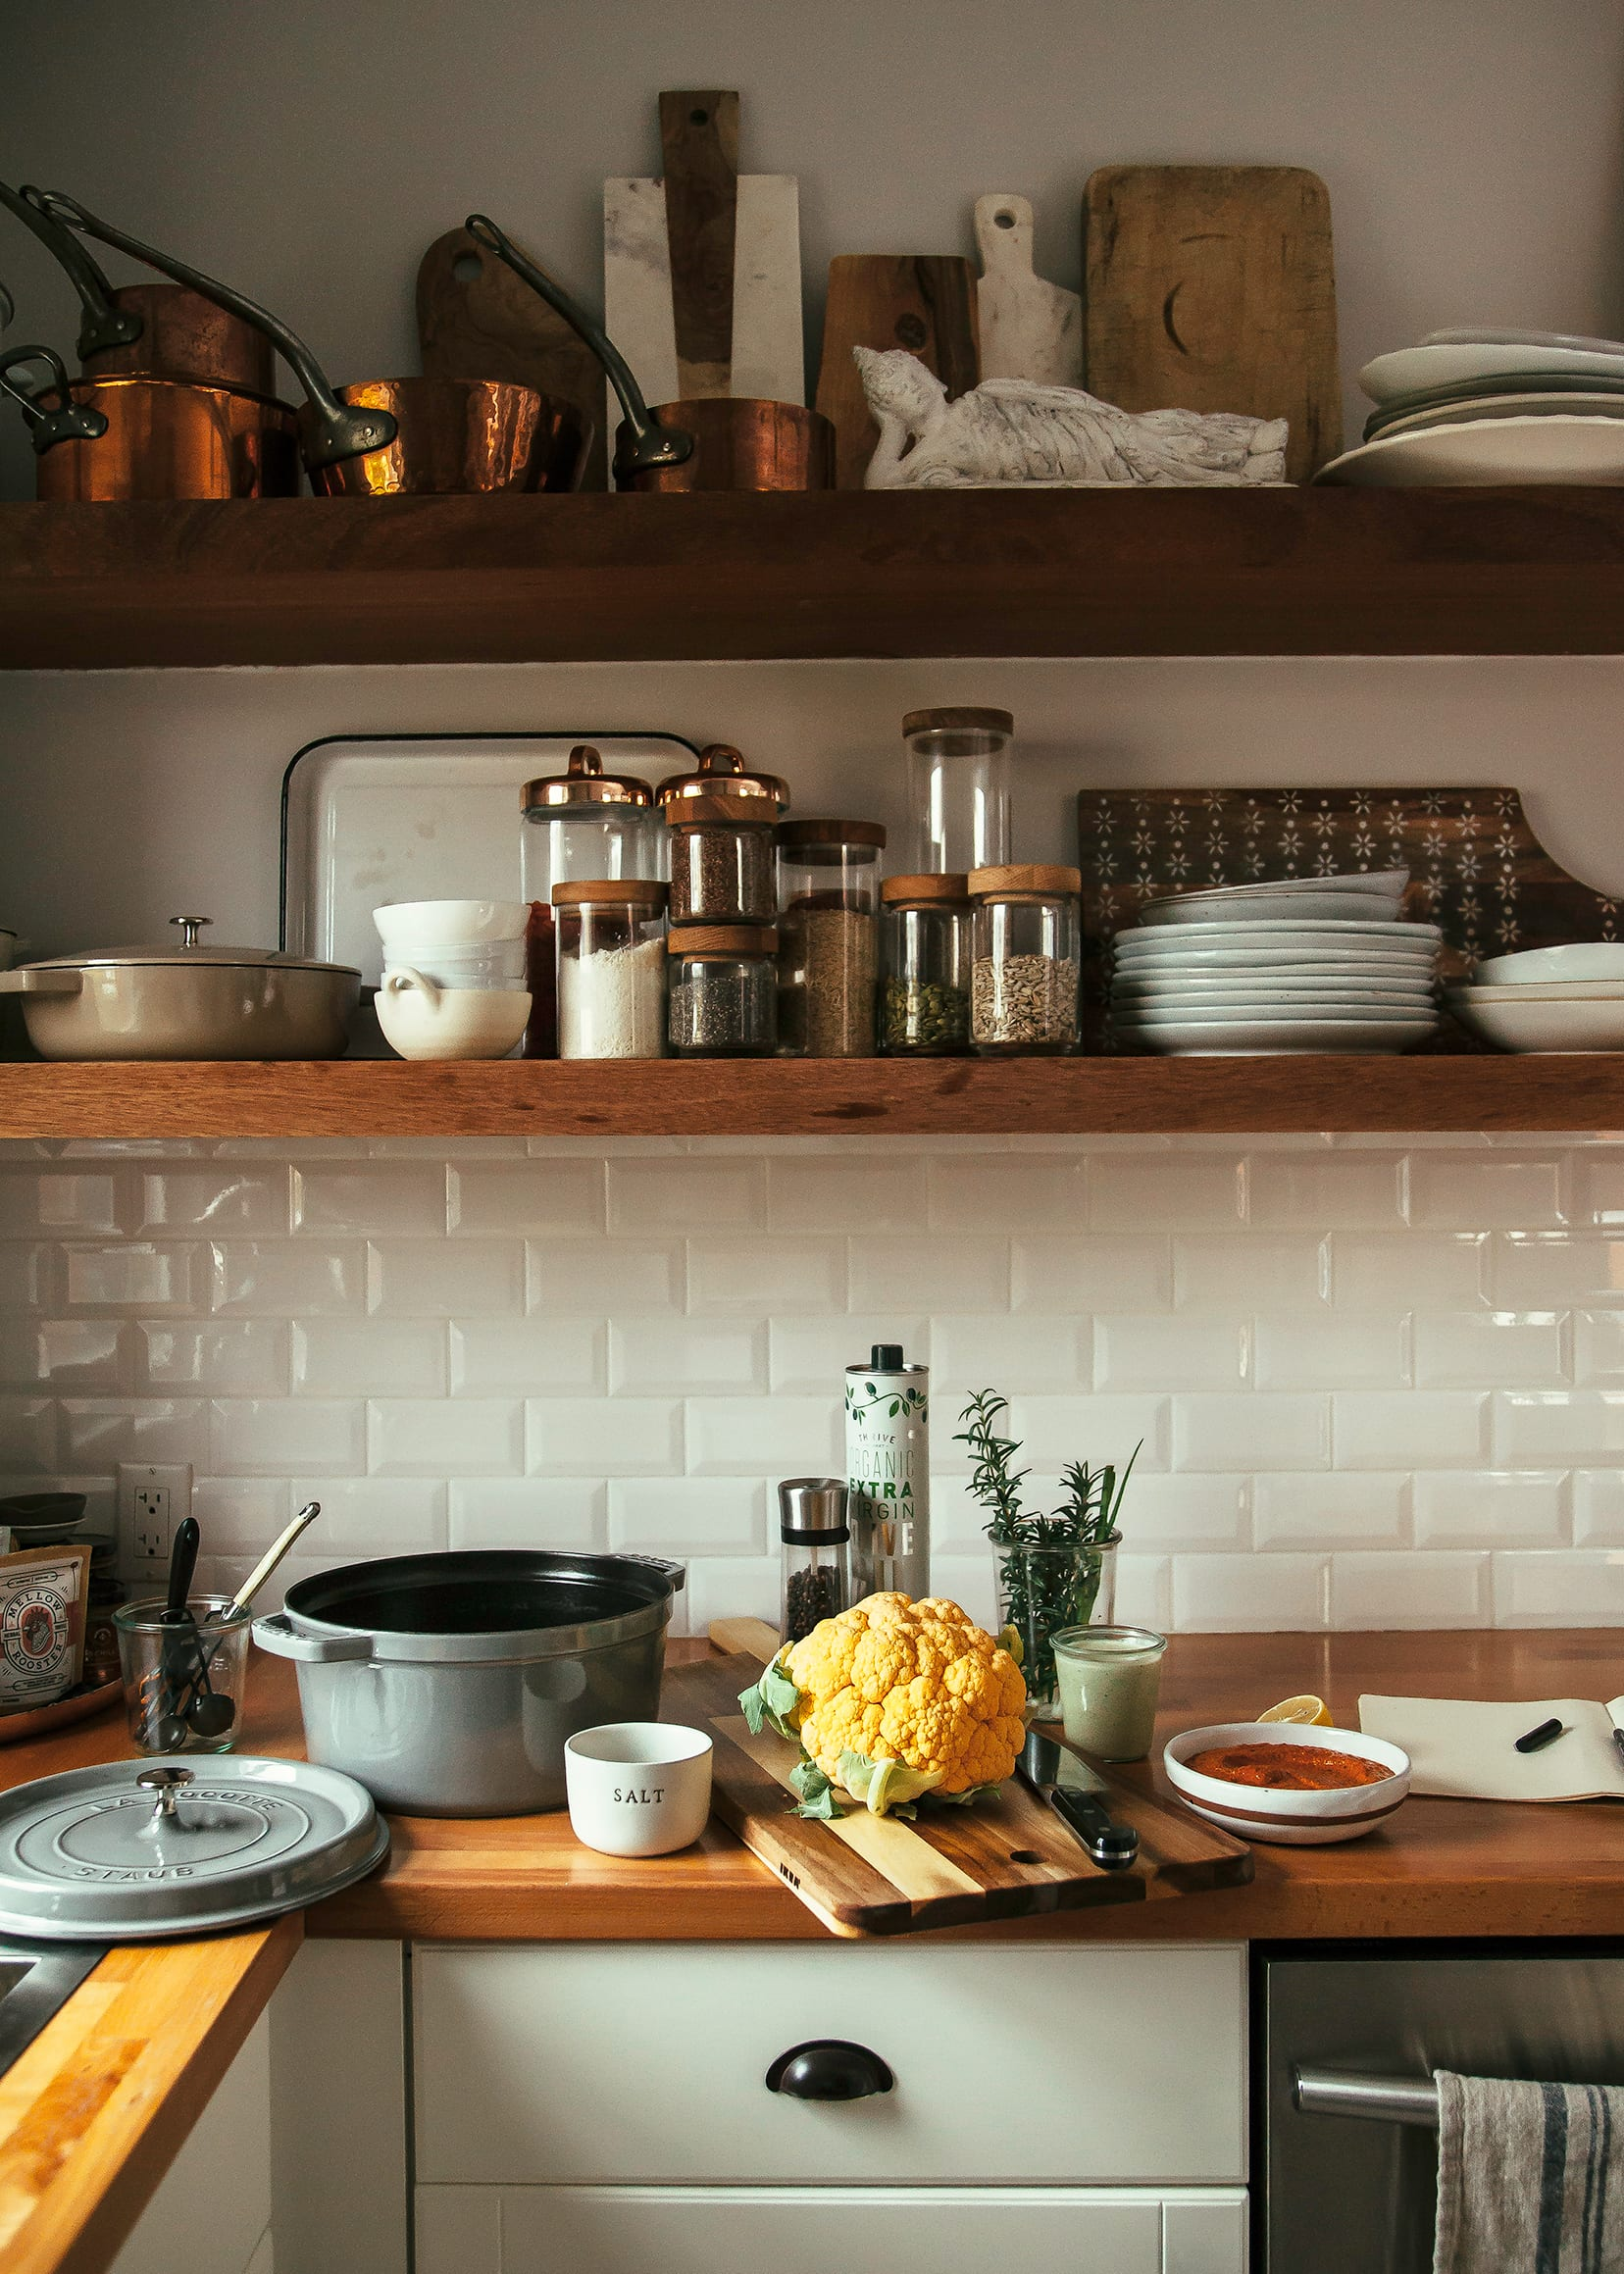 A kitchen scene shows a cauliflower and other prepped ingredients on top of a butcher block counter with open shelving in the background.